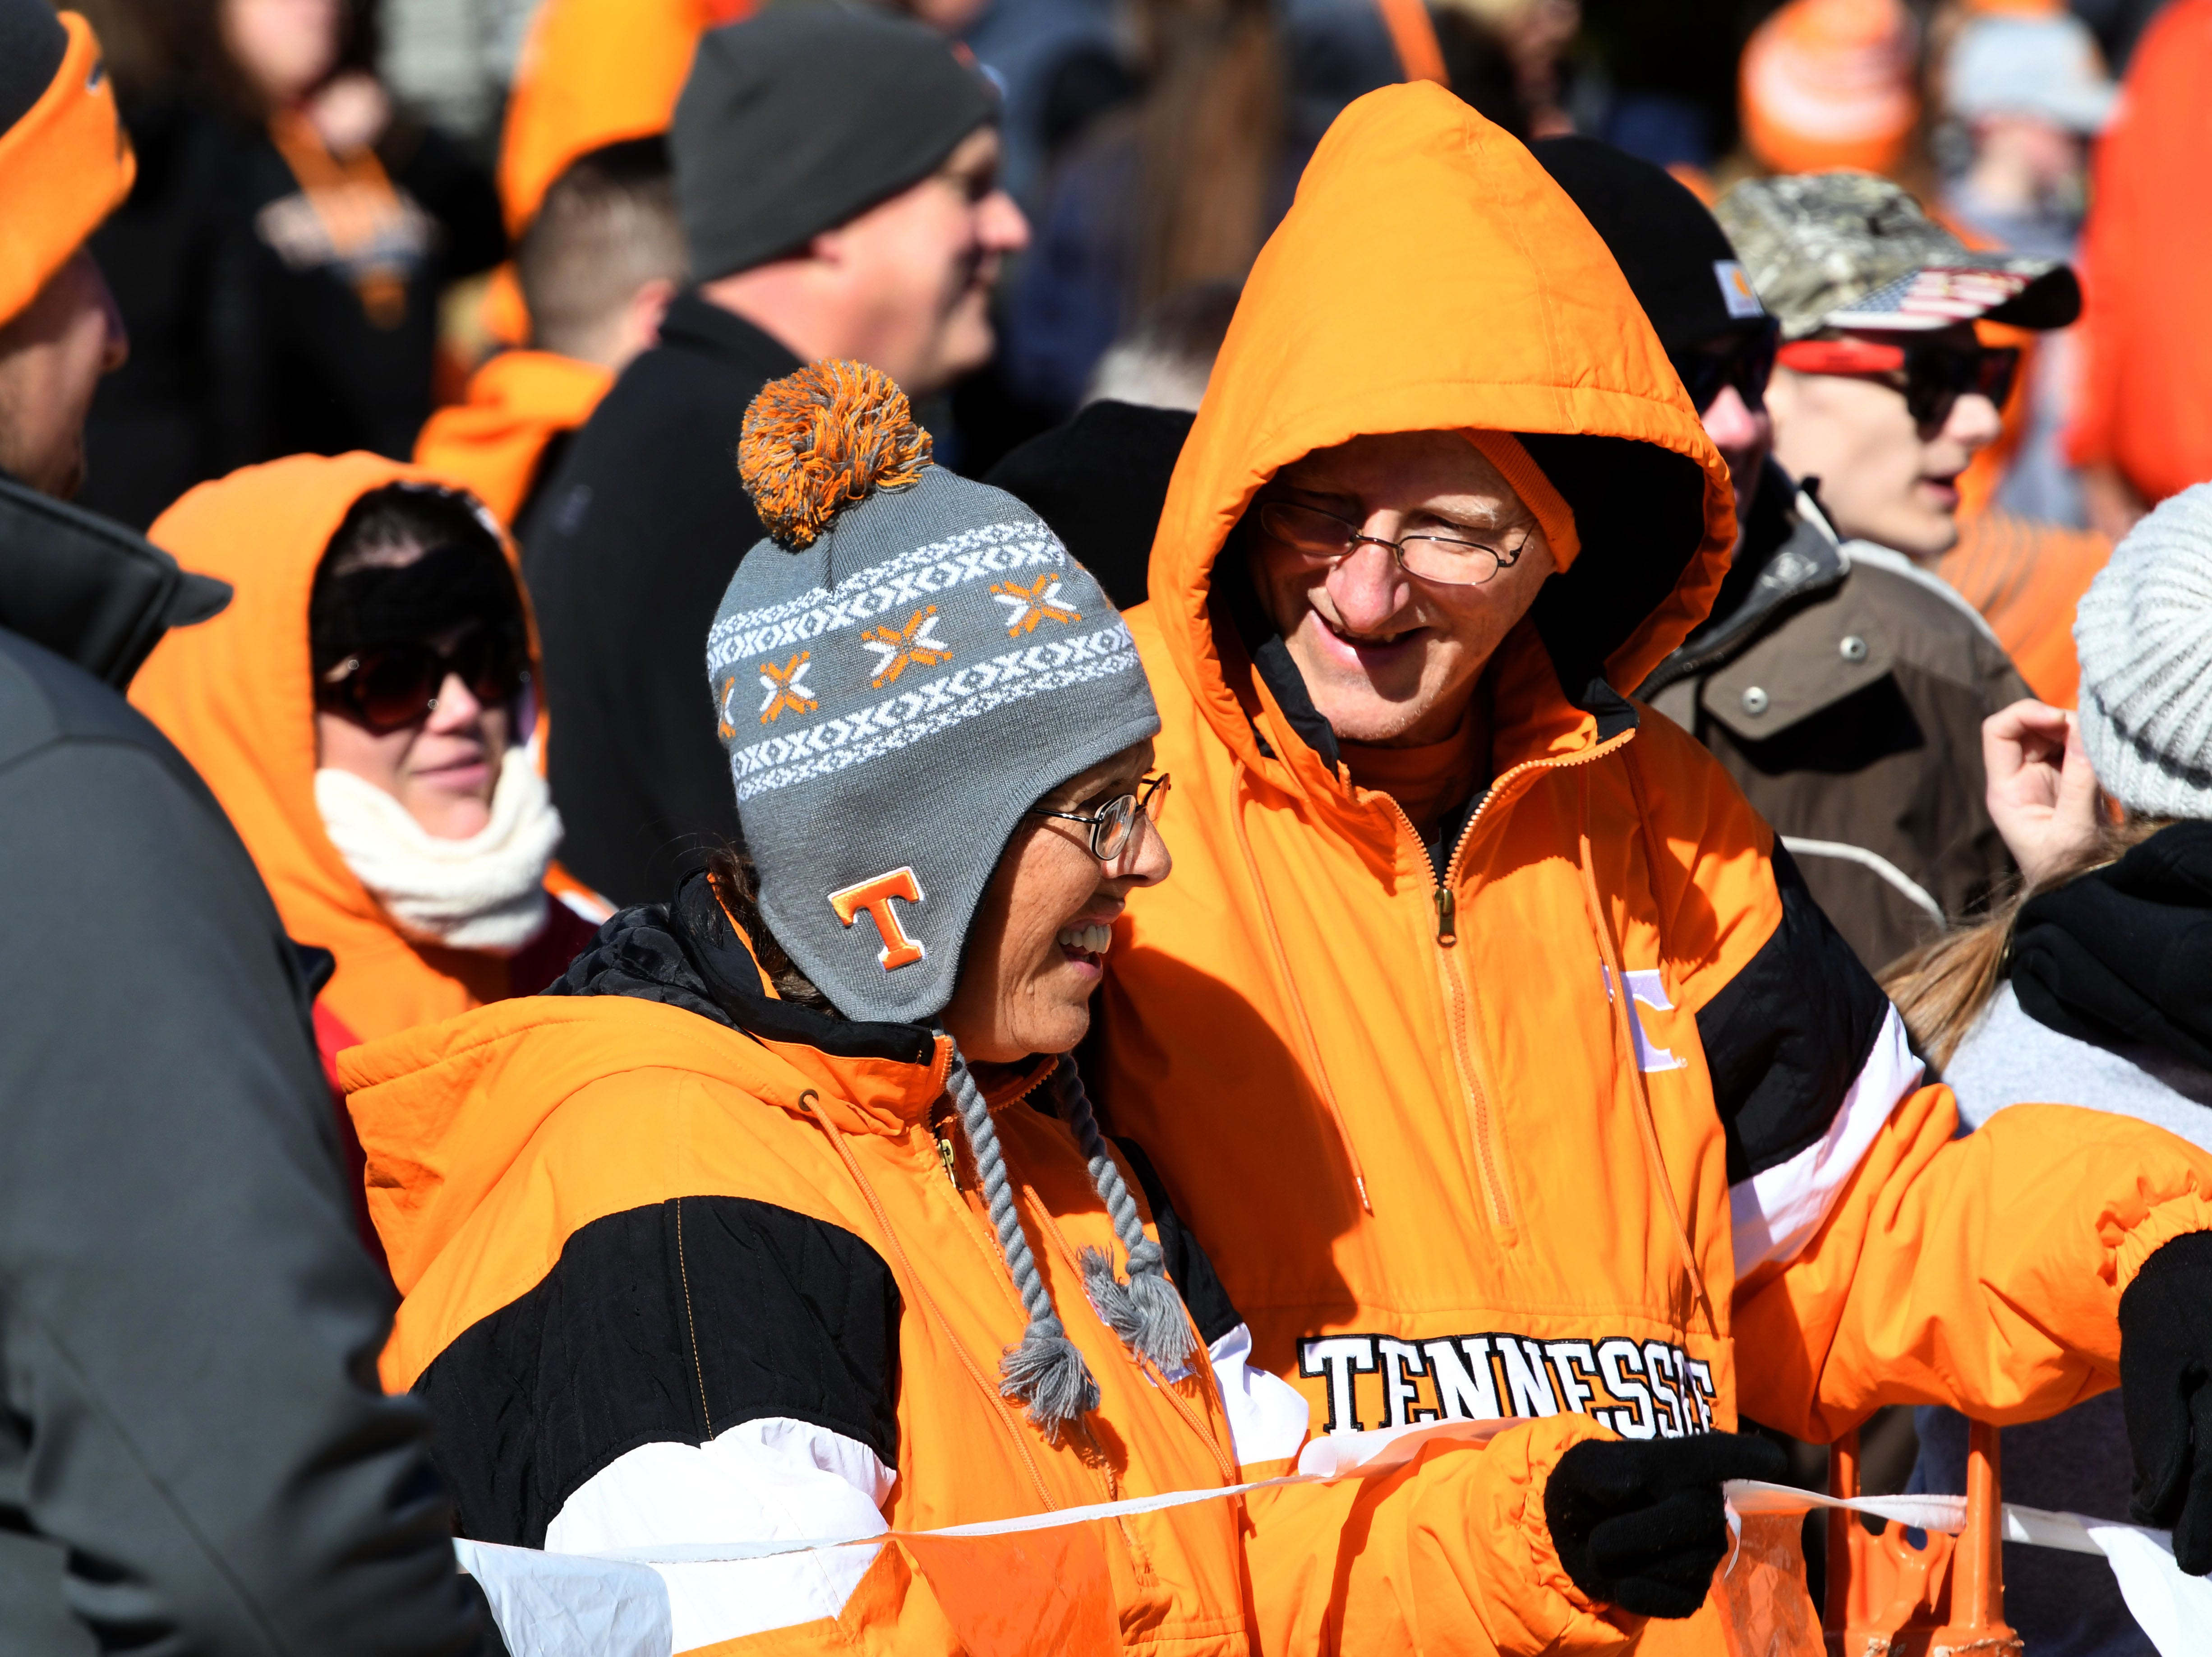 Bumbles up Tennessee fans during the Vol Walk before the Kentucky game Saturday, November 10, 2018 at Neyland Stadium in Knoxville, Tenn.